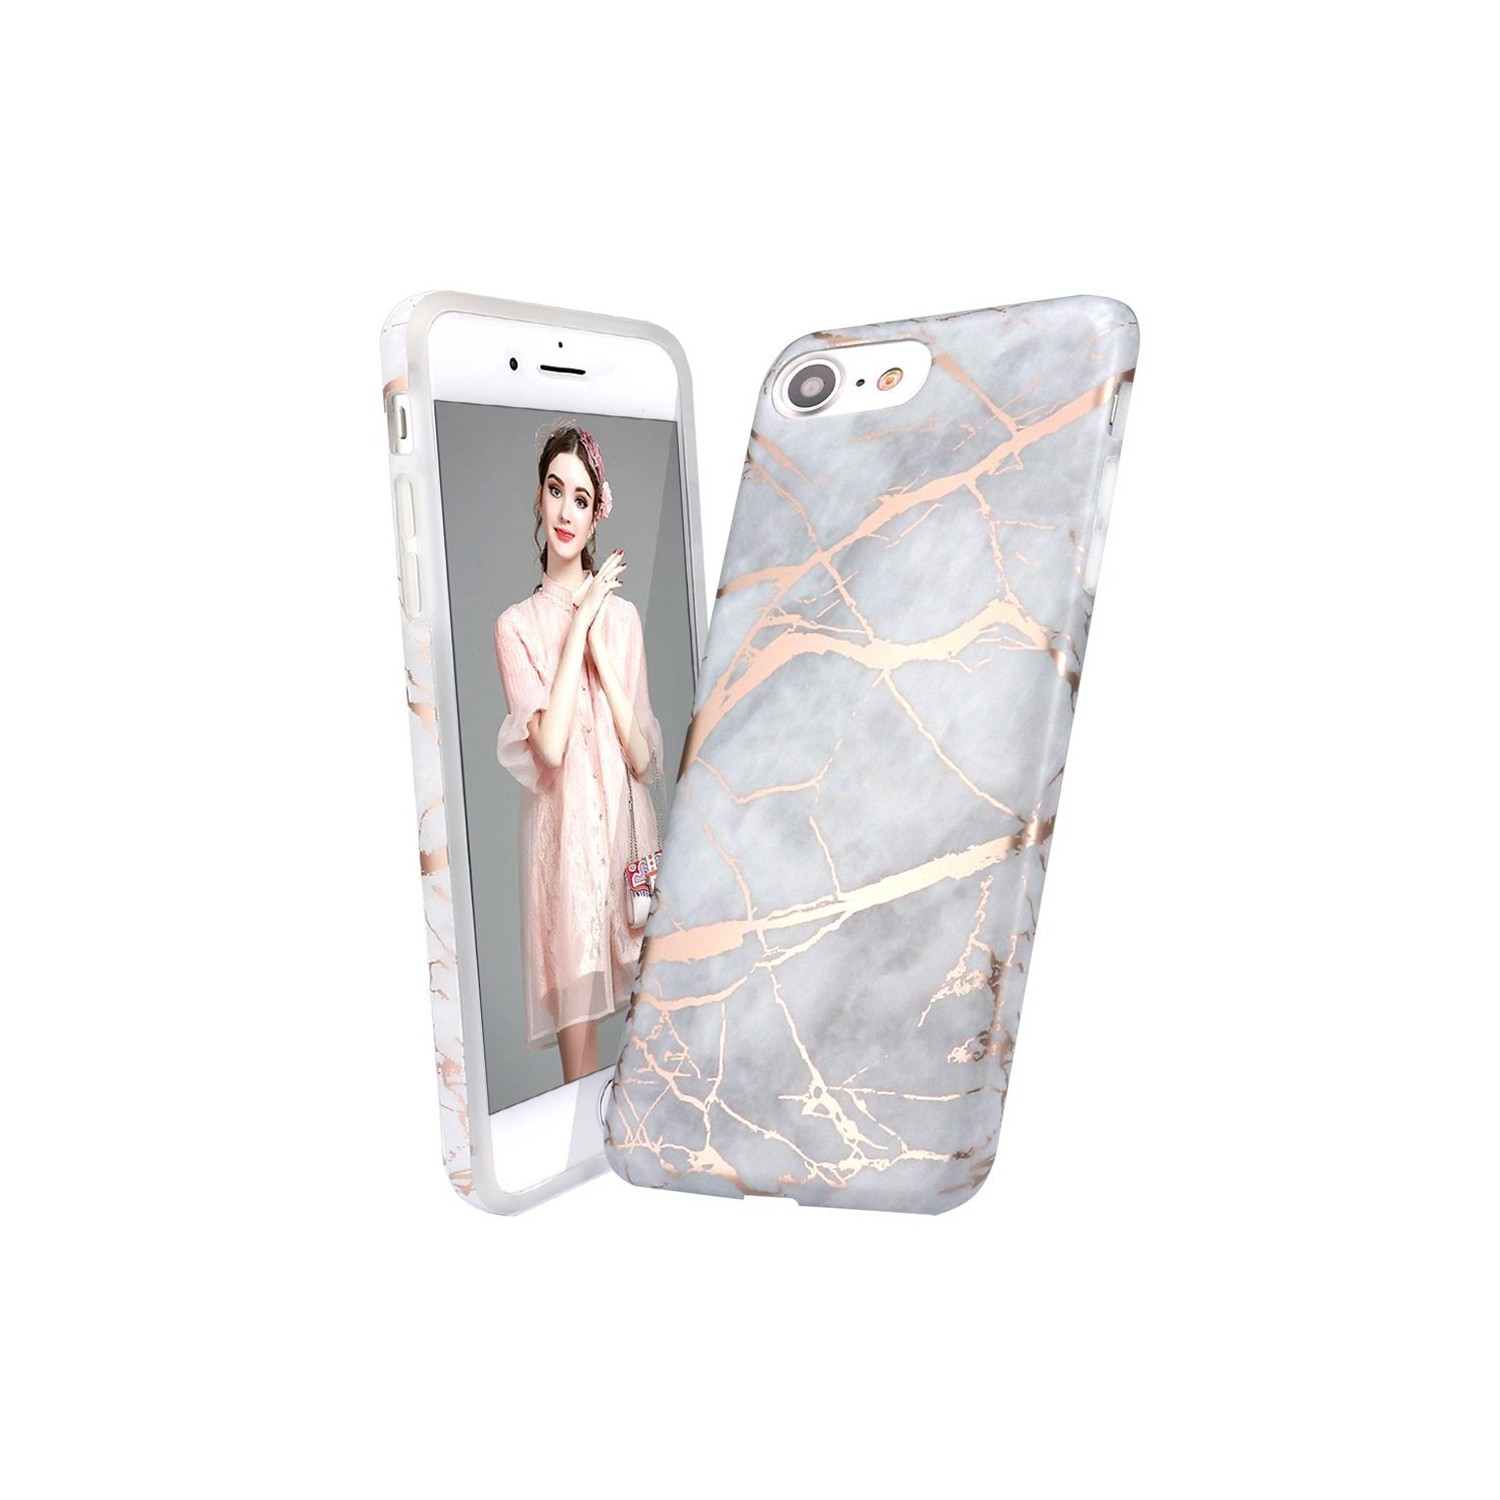 Iphone 5 Caseiphone 5s Se Caseshiny Rose Gold Metallic Light Gray